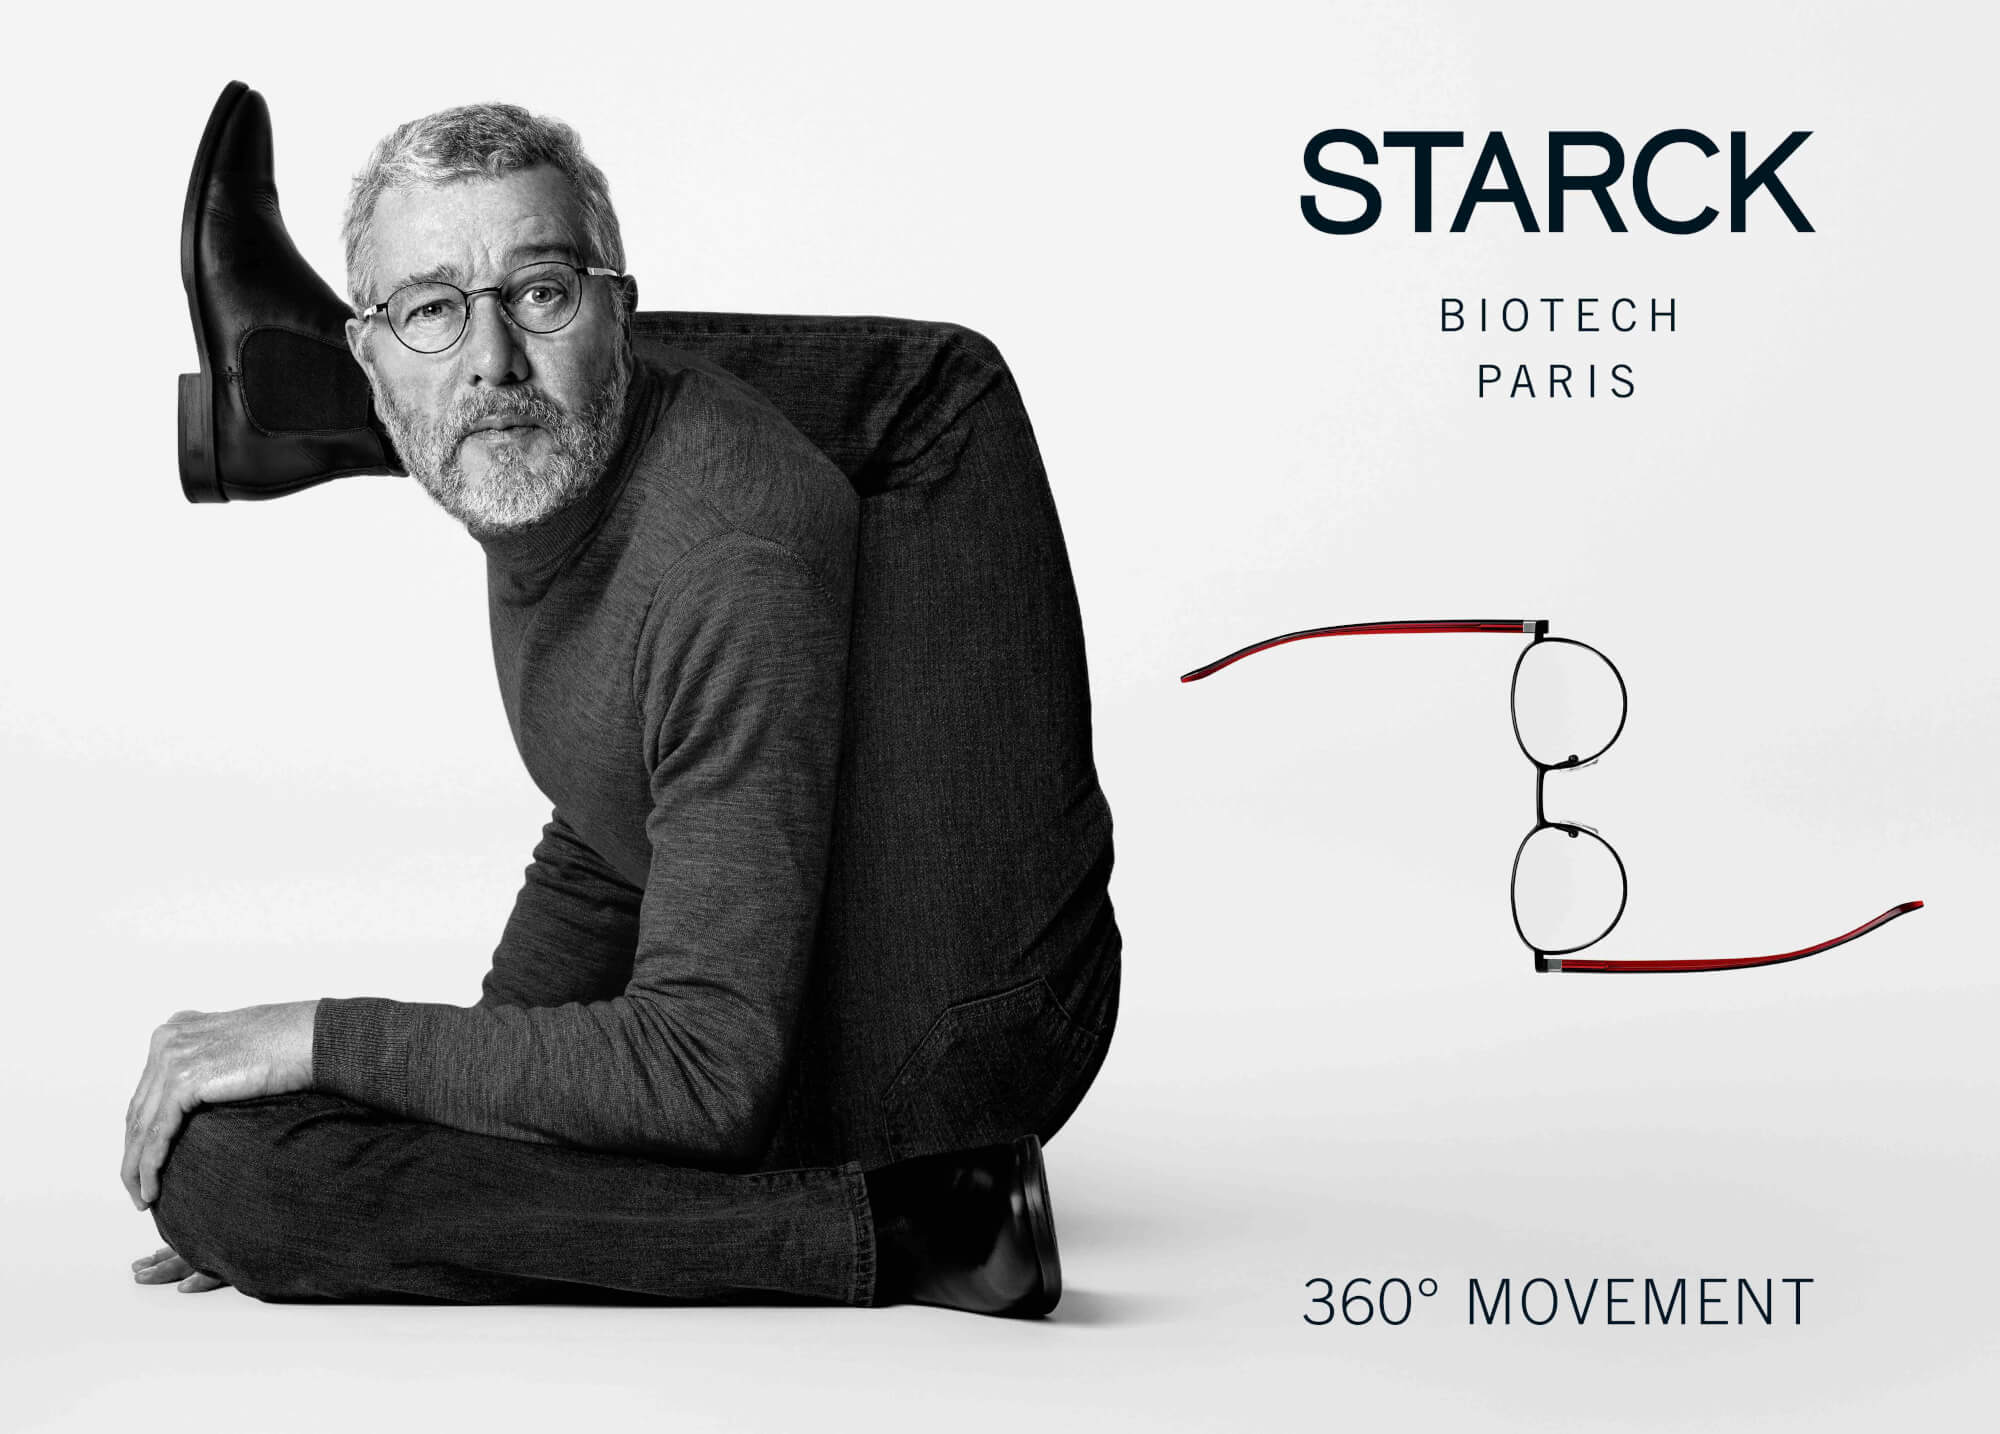 STARCK BIOTECH PARIS LAUNCHES A NEW BREED OF FLEXIBILITY -